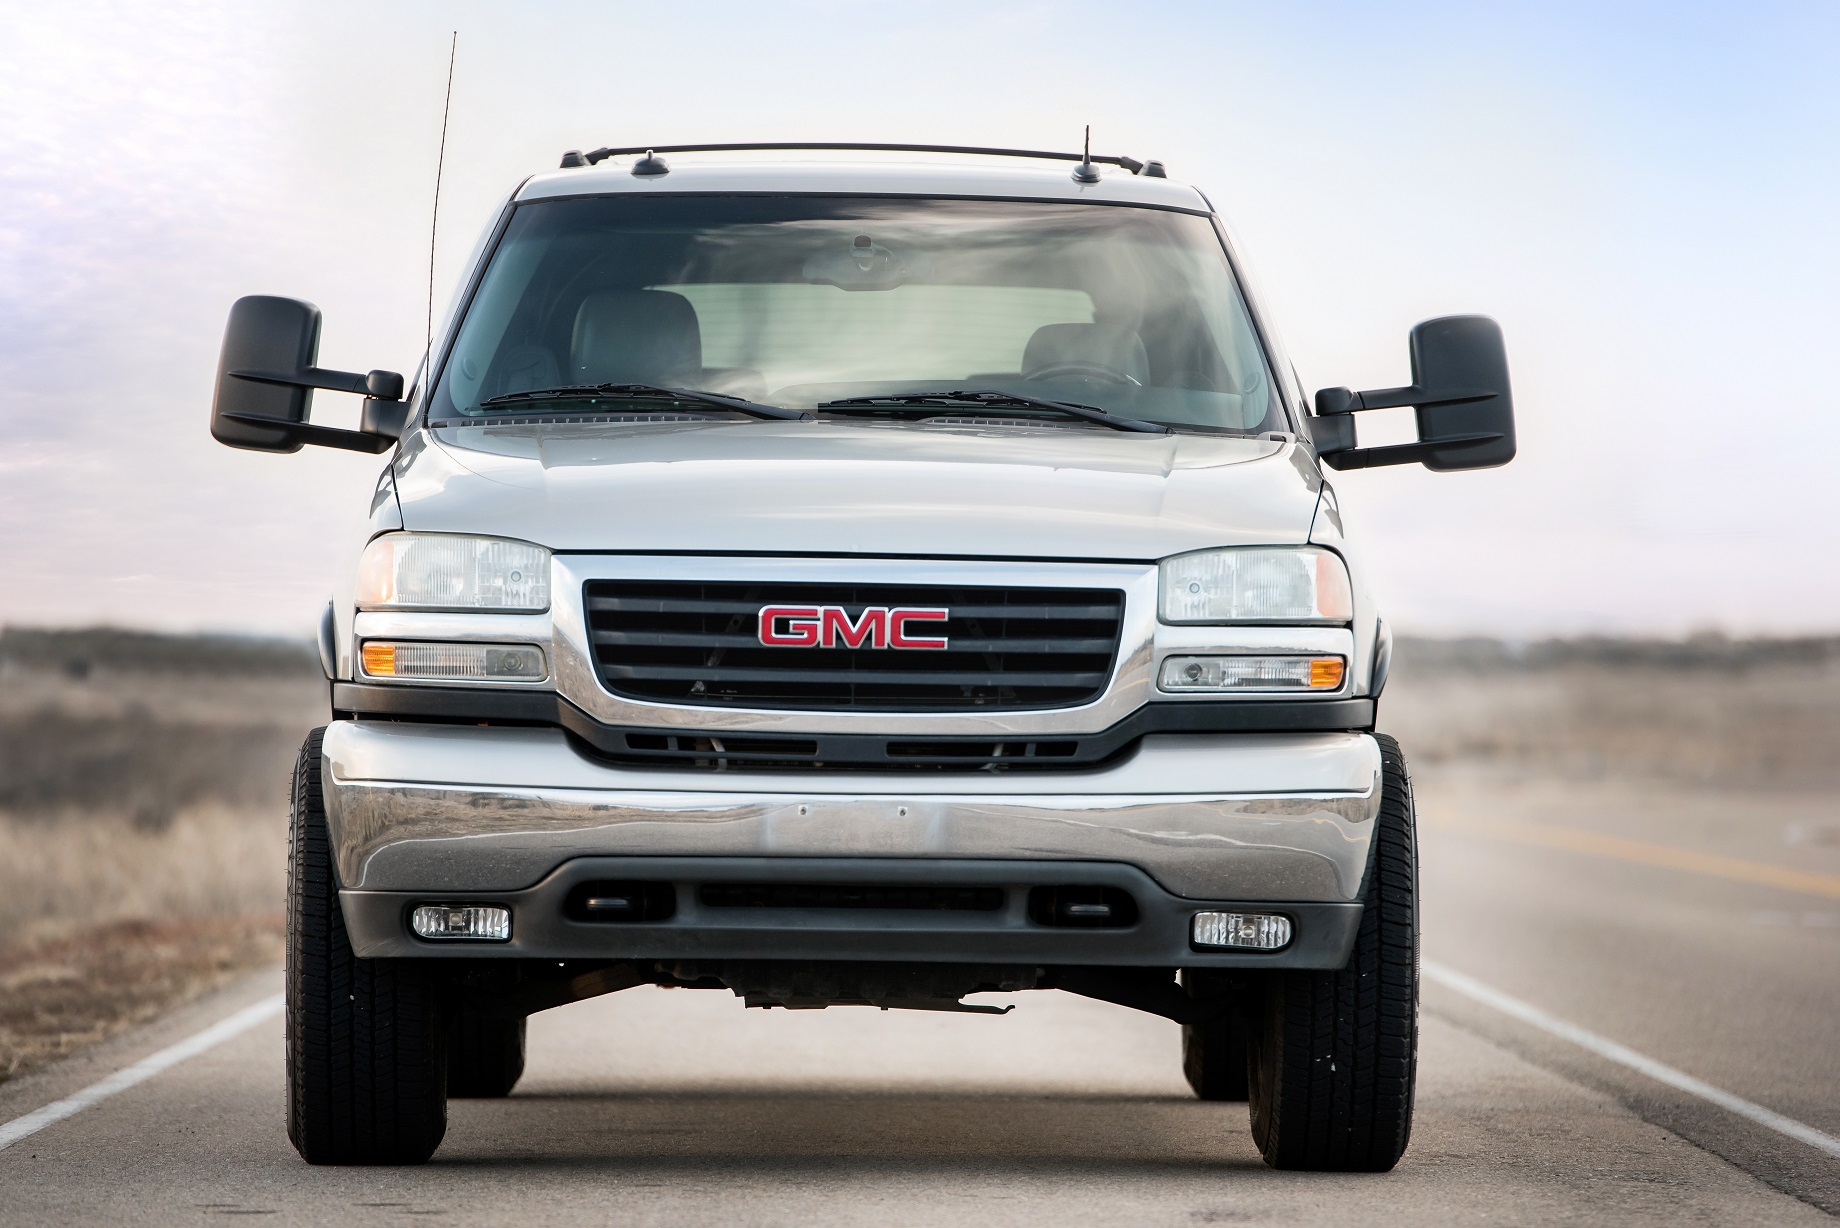 0495 _ 03 GMC Yukon XL 2500HD DRMX p1s